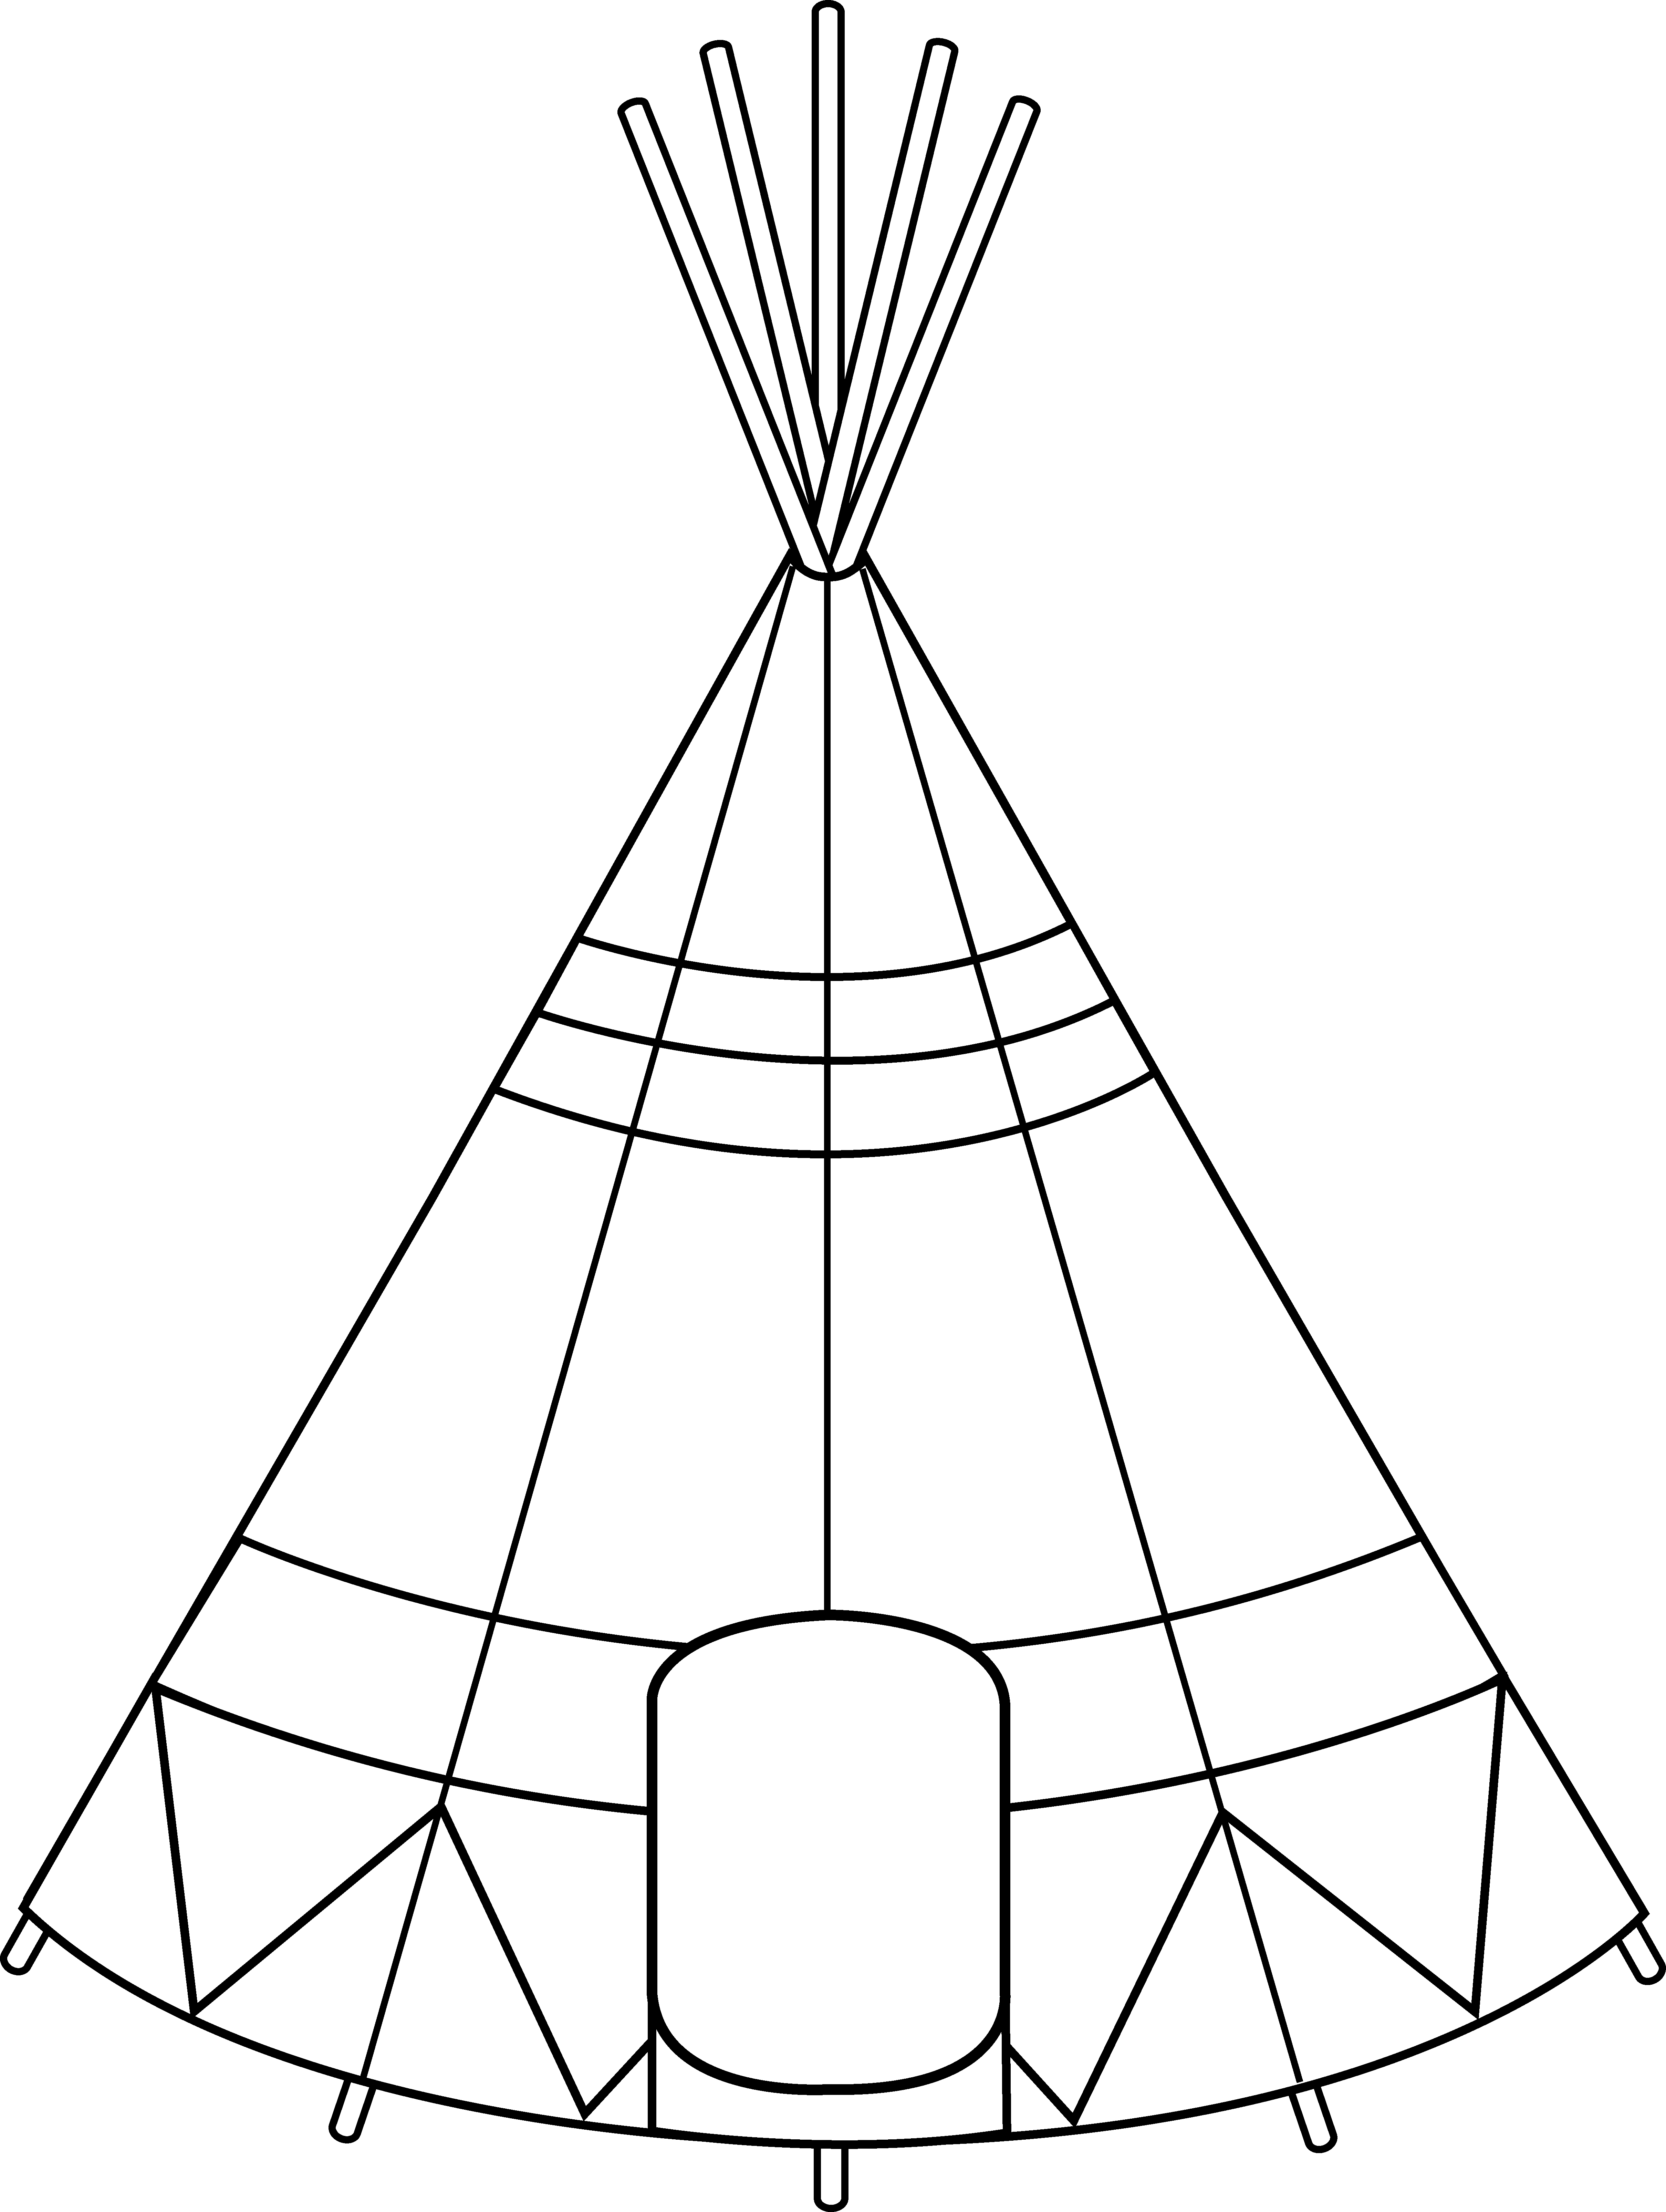 Woodland clipart teepee. Tent coloring page free